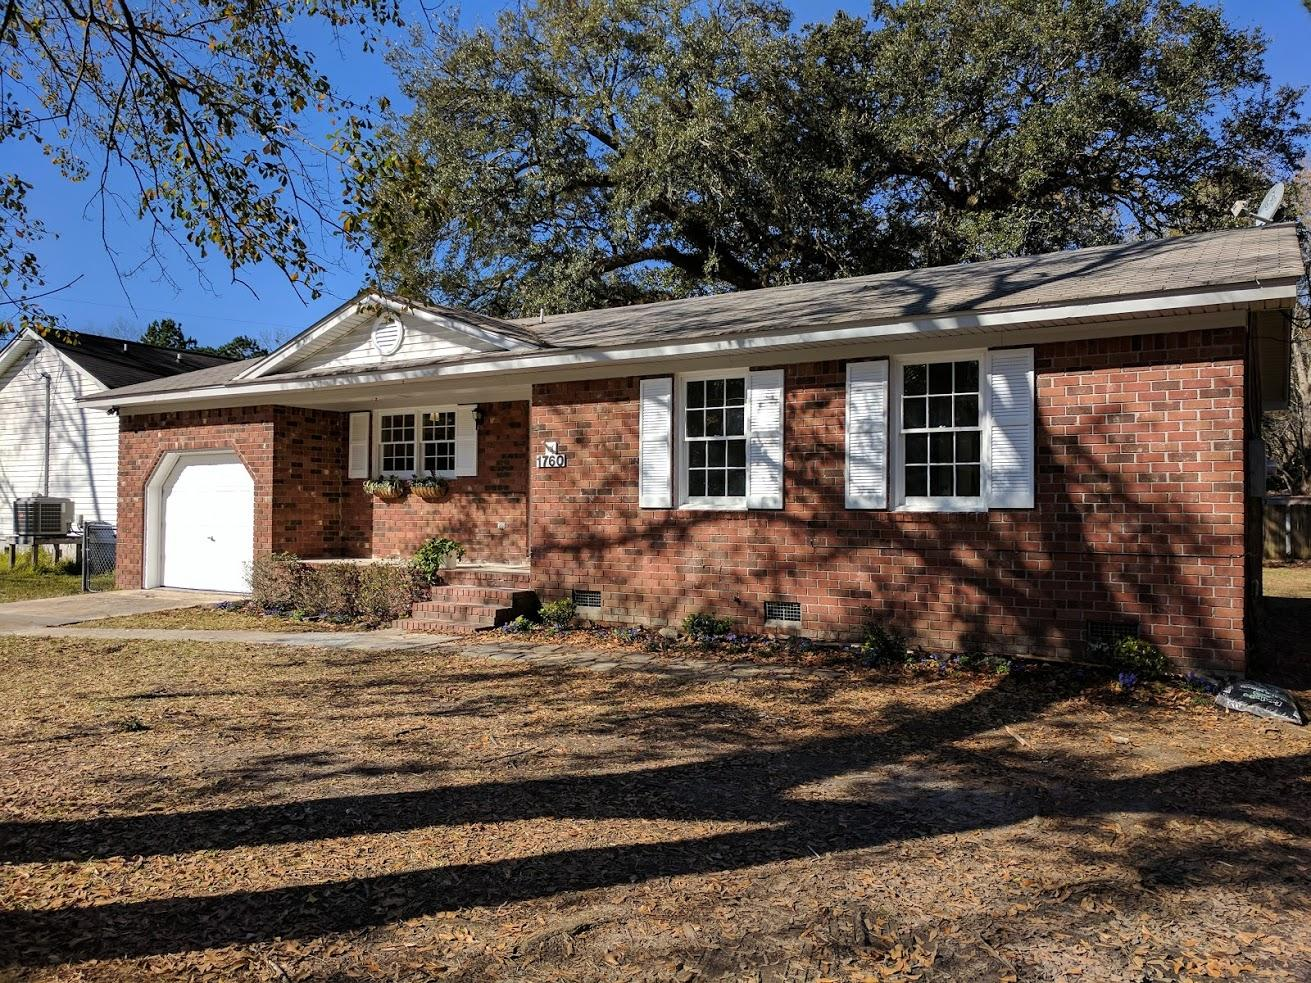 Double Oaks Homes For Sale - 1760 Dogwood, Charleston, SC - 0